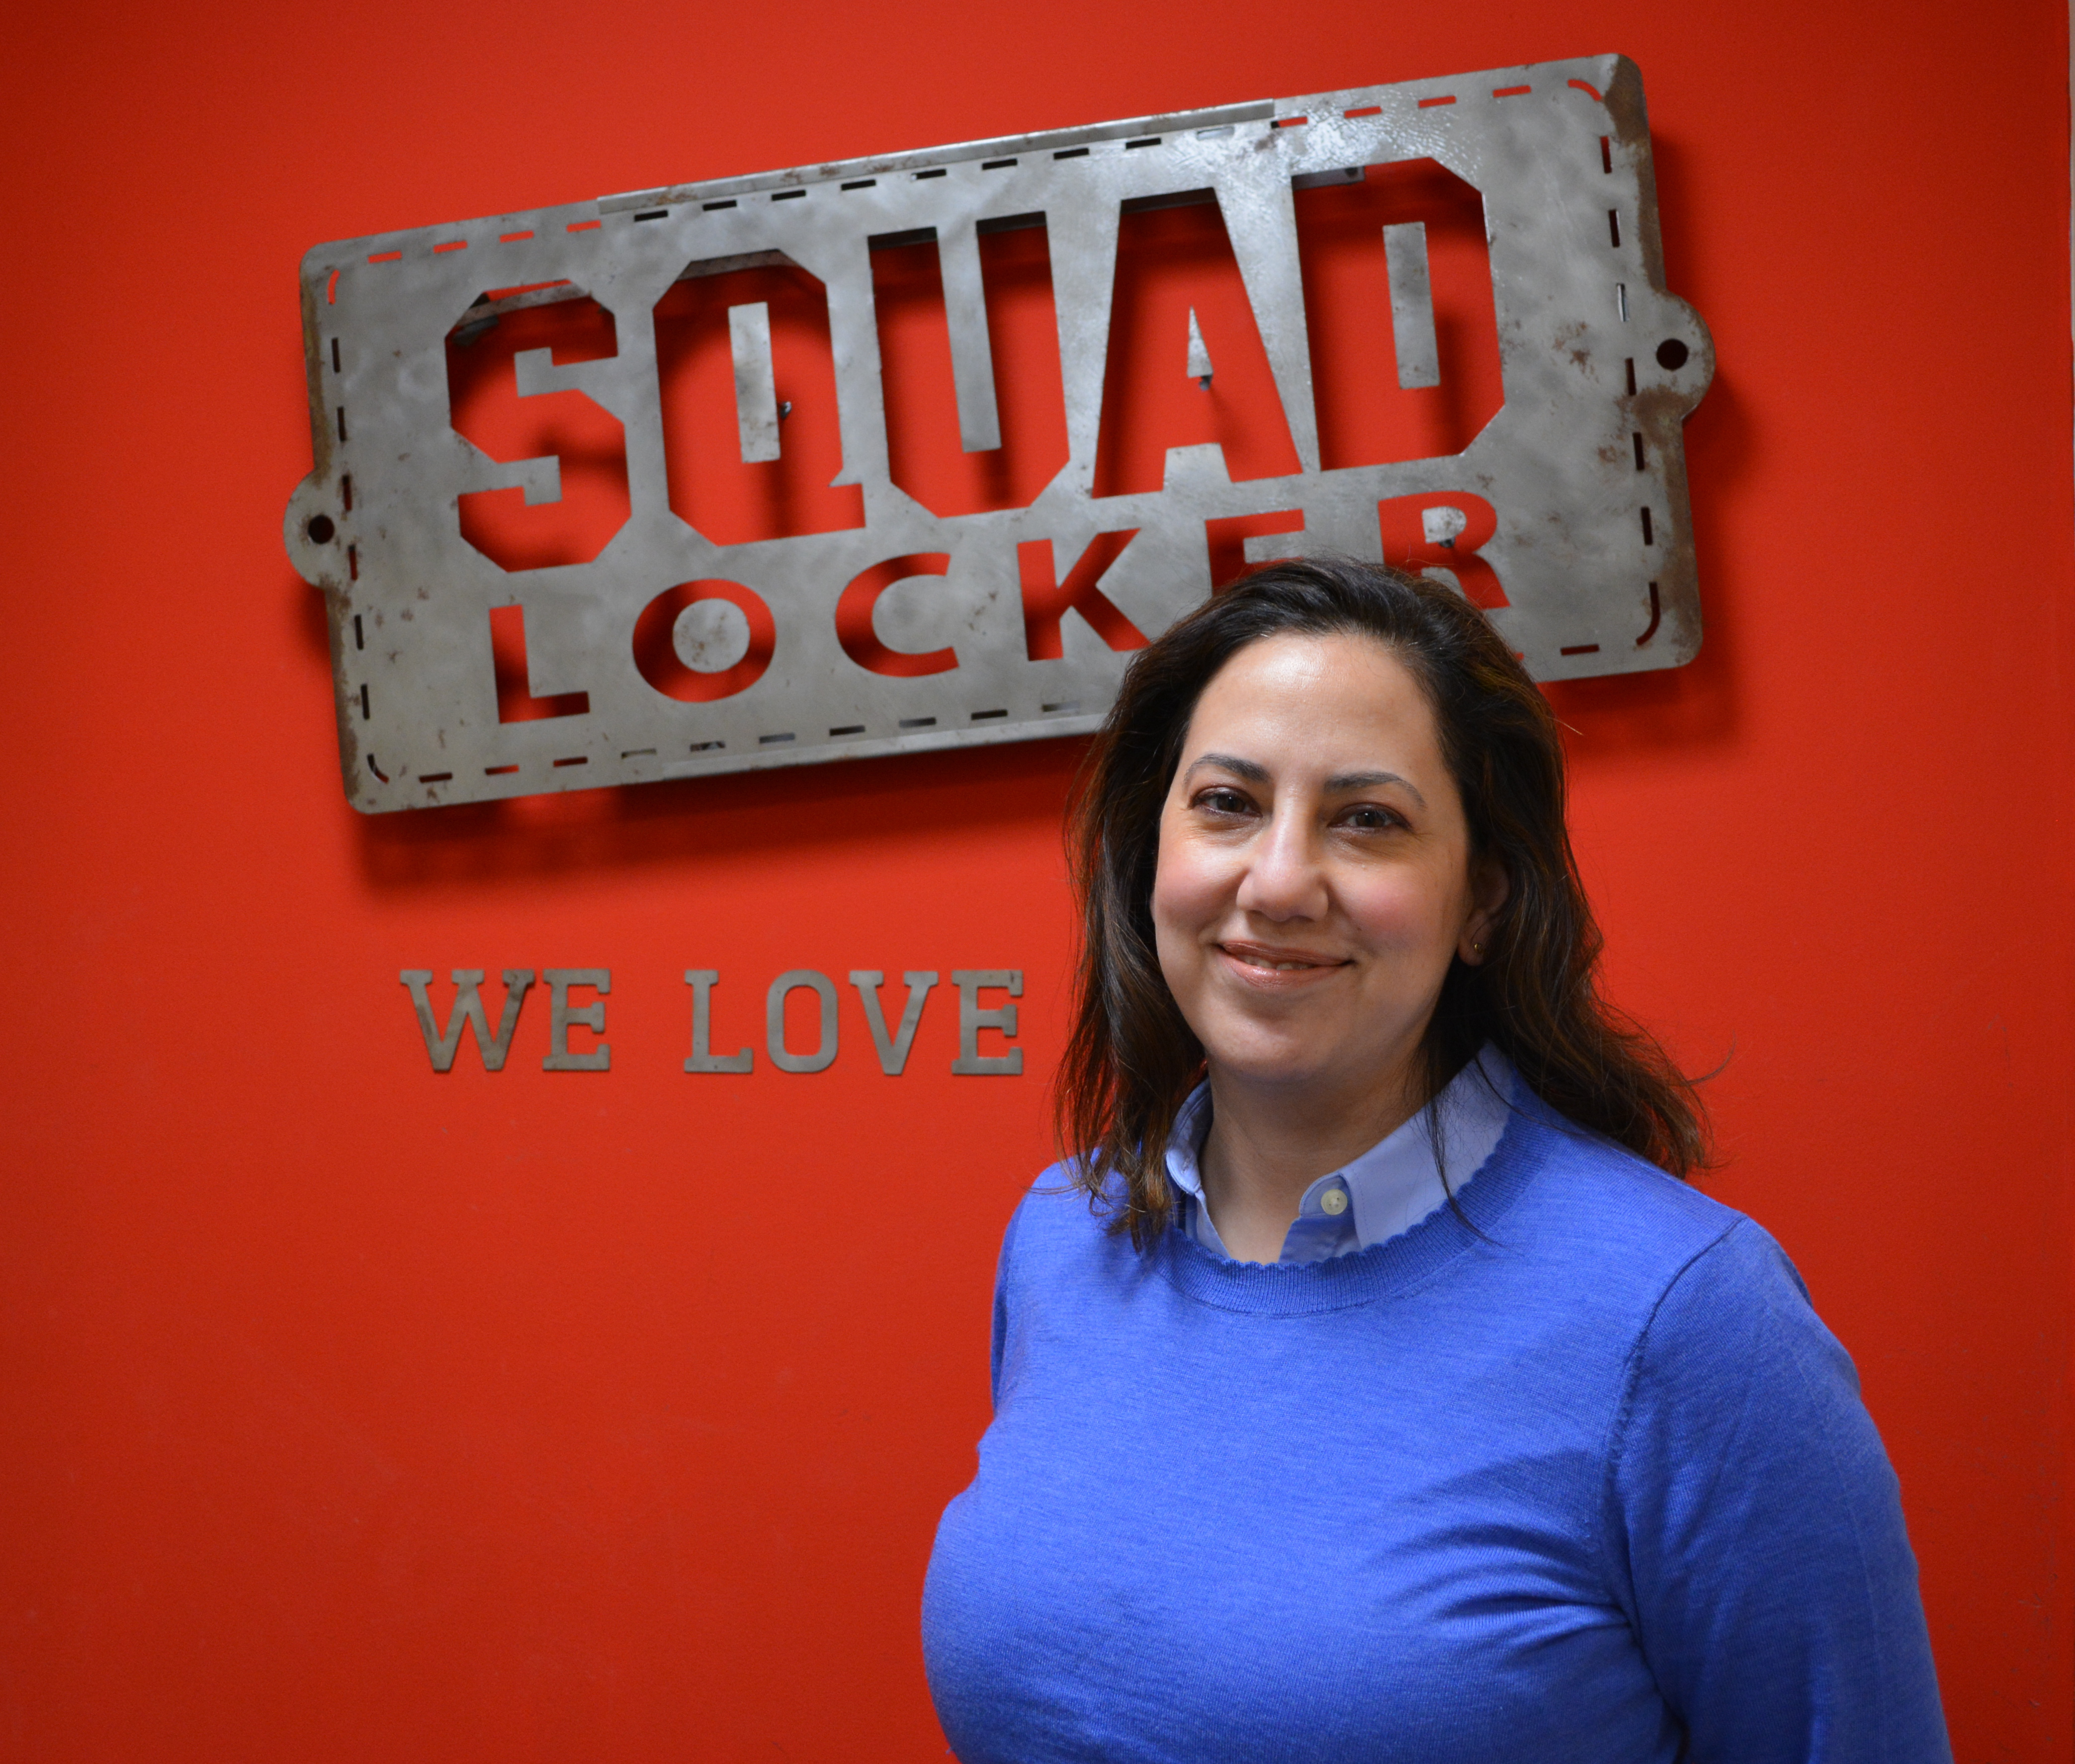 Karen Silveira Joins SquadLocker to Lead School Uniform Initiative